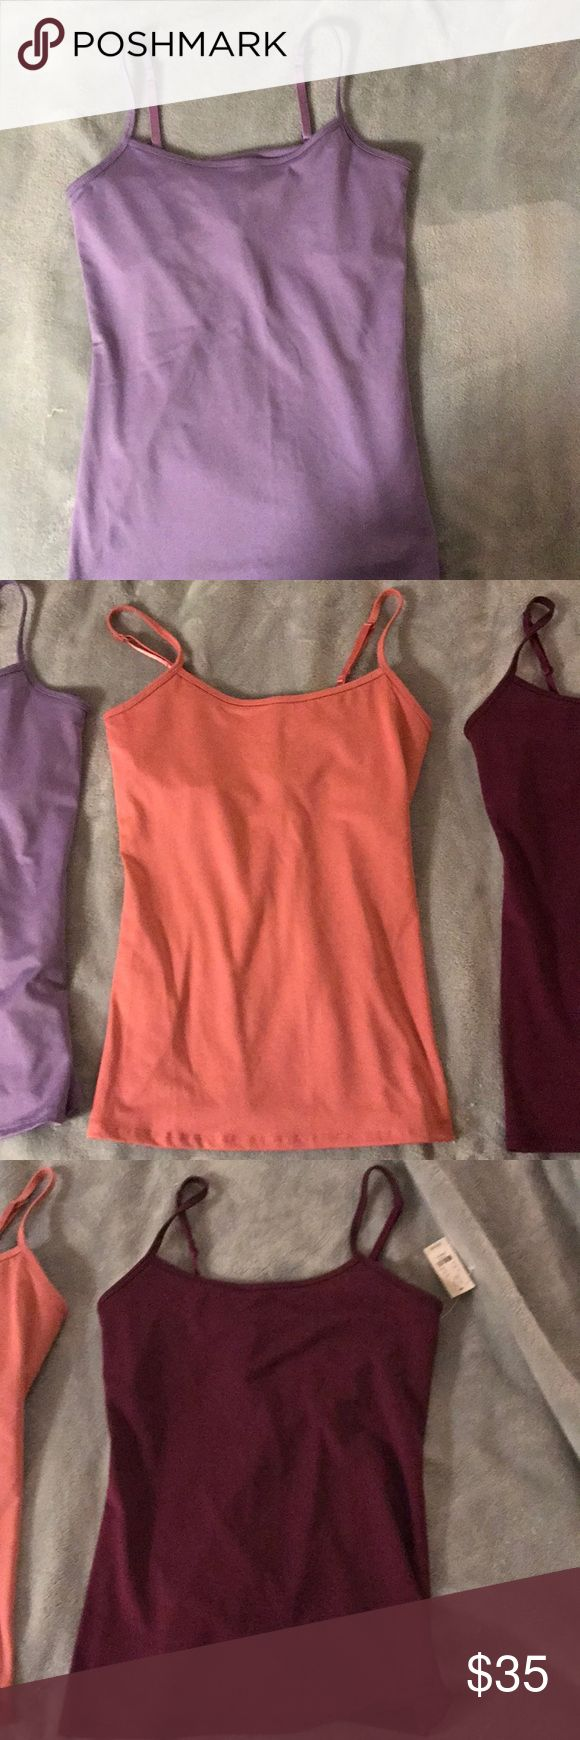 New York and company shelf bra camisoles 3 different shelf bra camisoles. Pink, purple, and maroon. The maroon comes nwt New York & Company Tops Camisoles